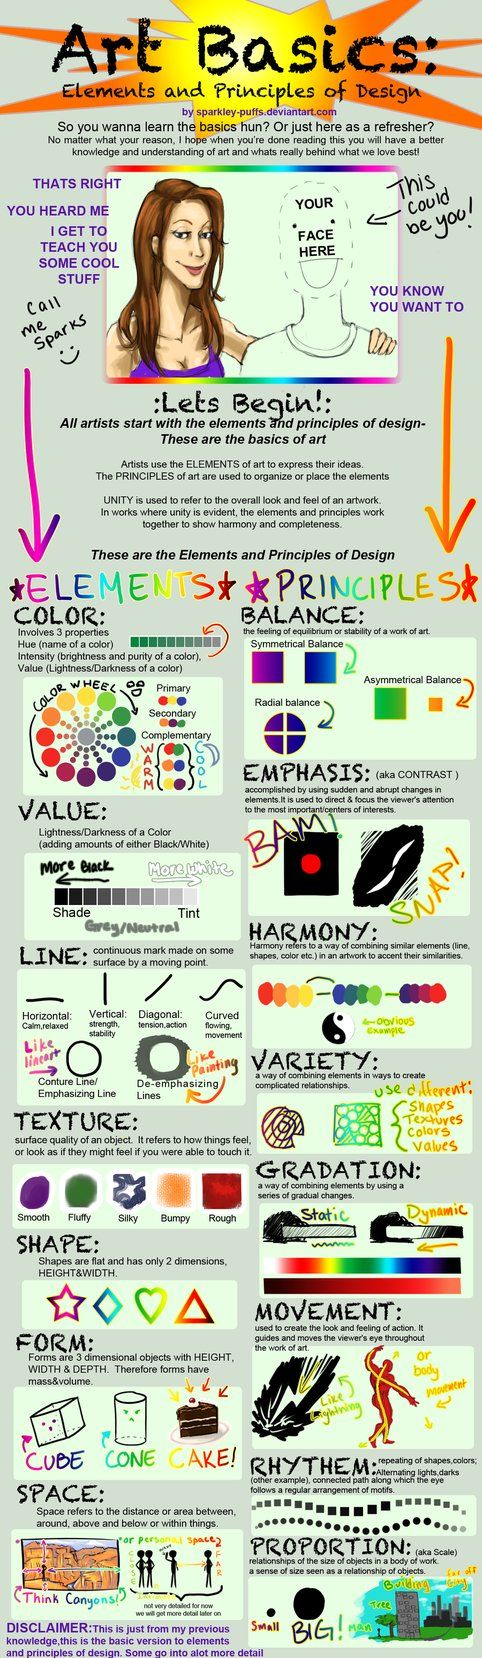 Element And Principle : Elements principles of design by thecuddlykoalawhale on